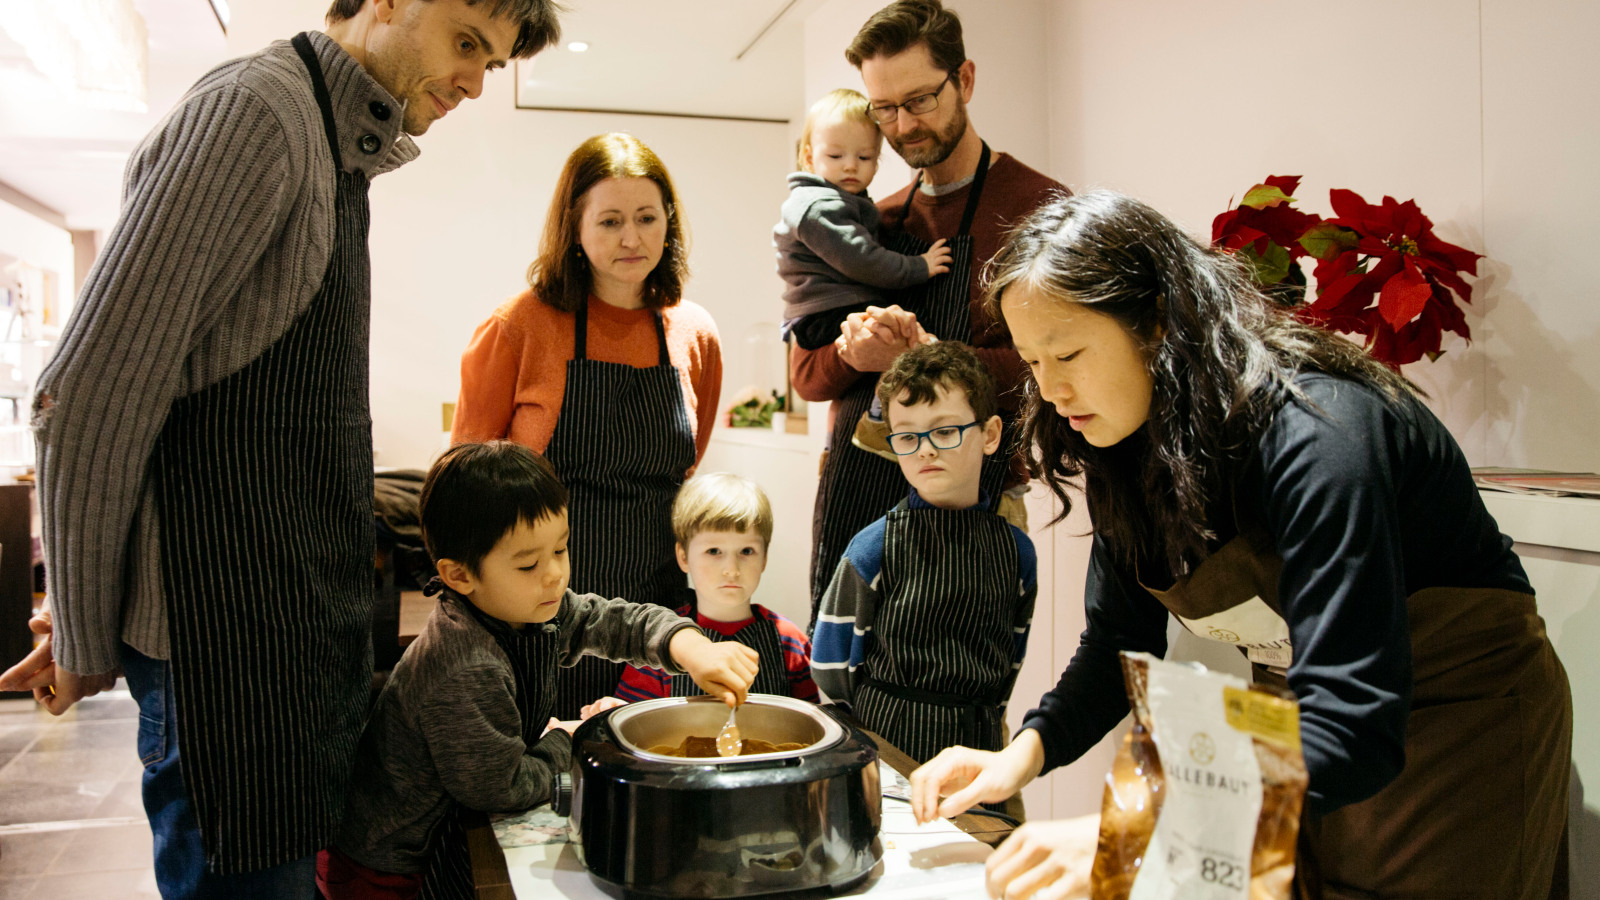 Guests of all ages talking to and cooking with a Host